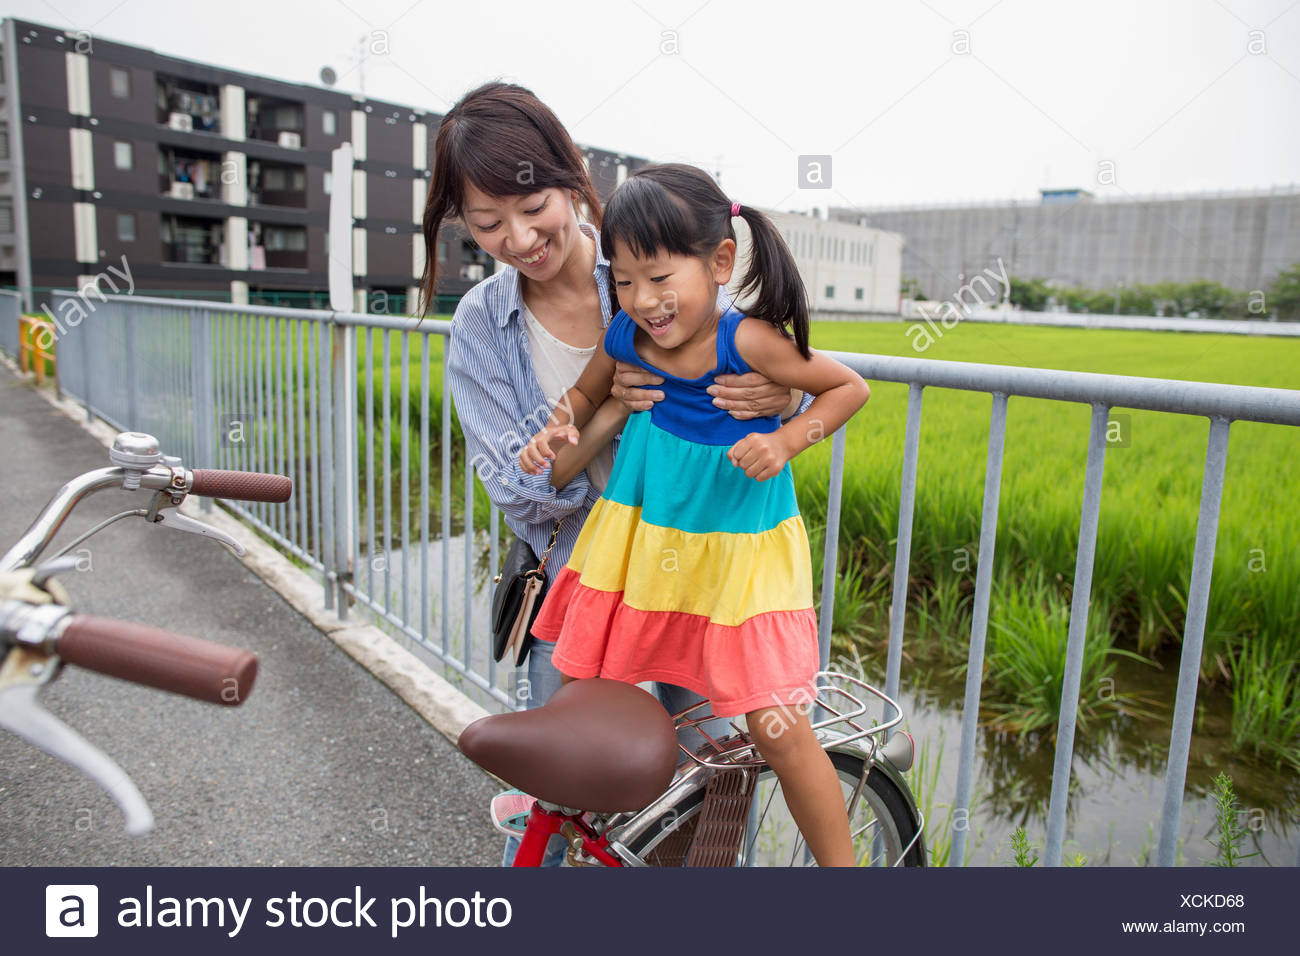 A mother lifting her daughter onto a bicycle. - Stock Image